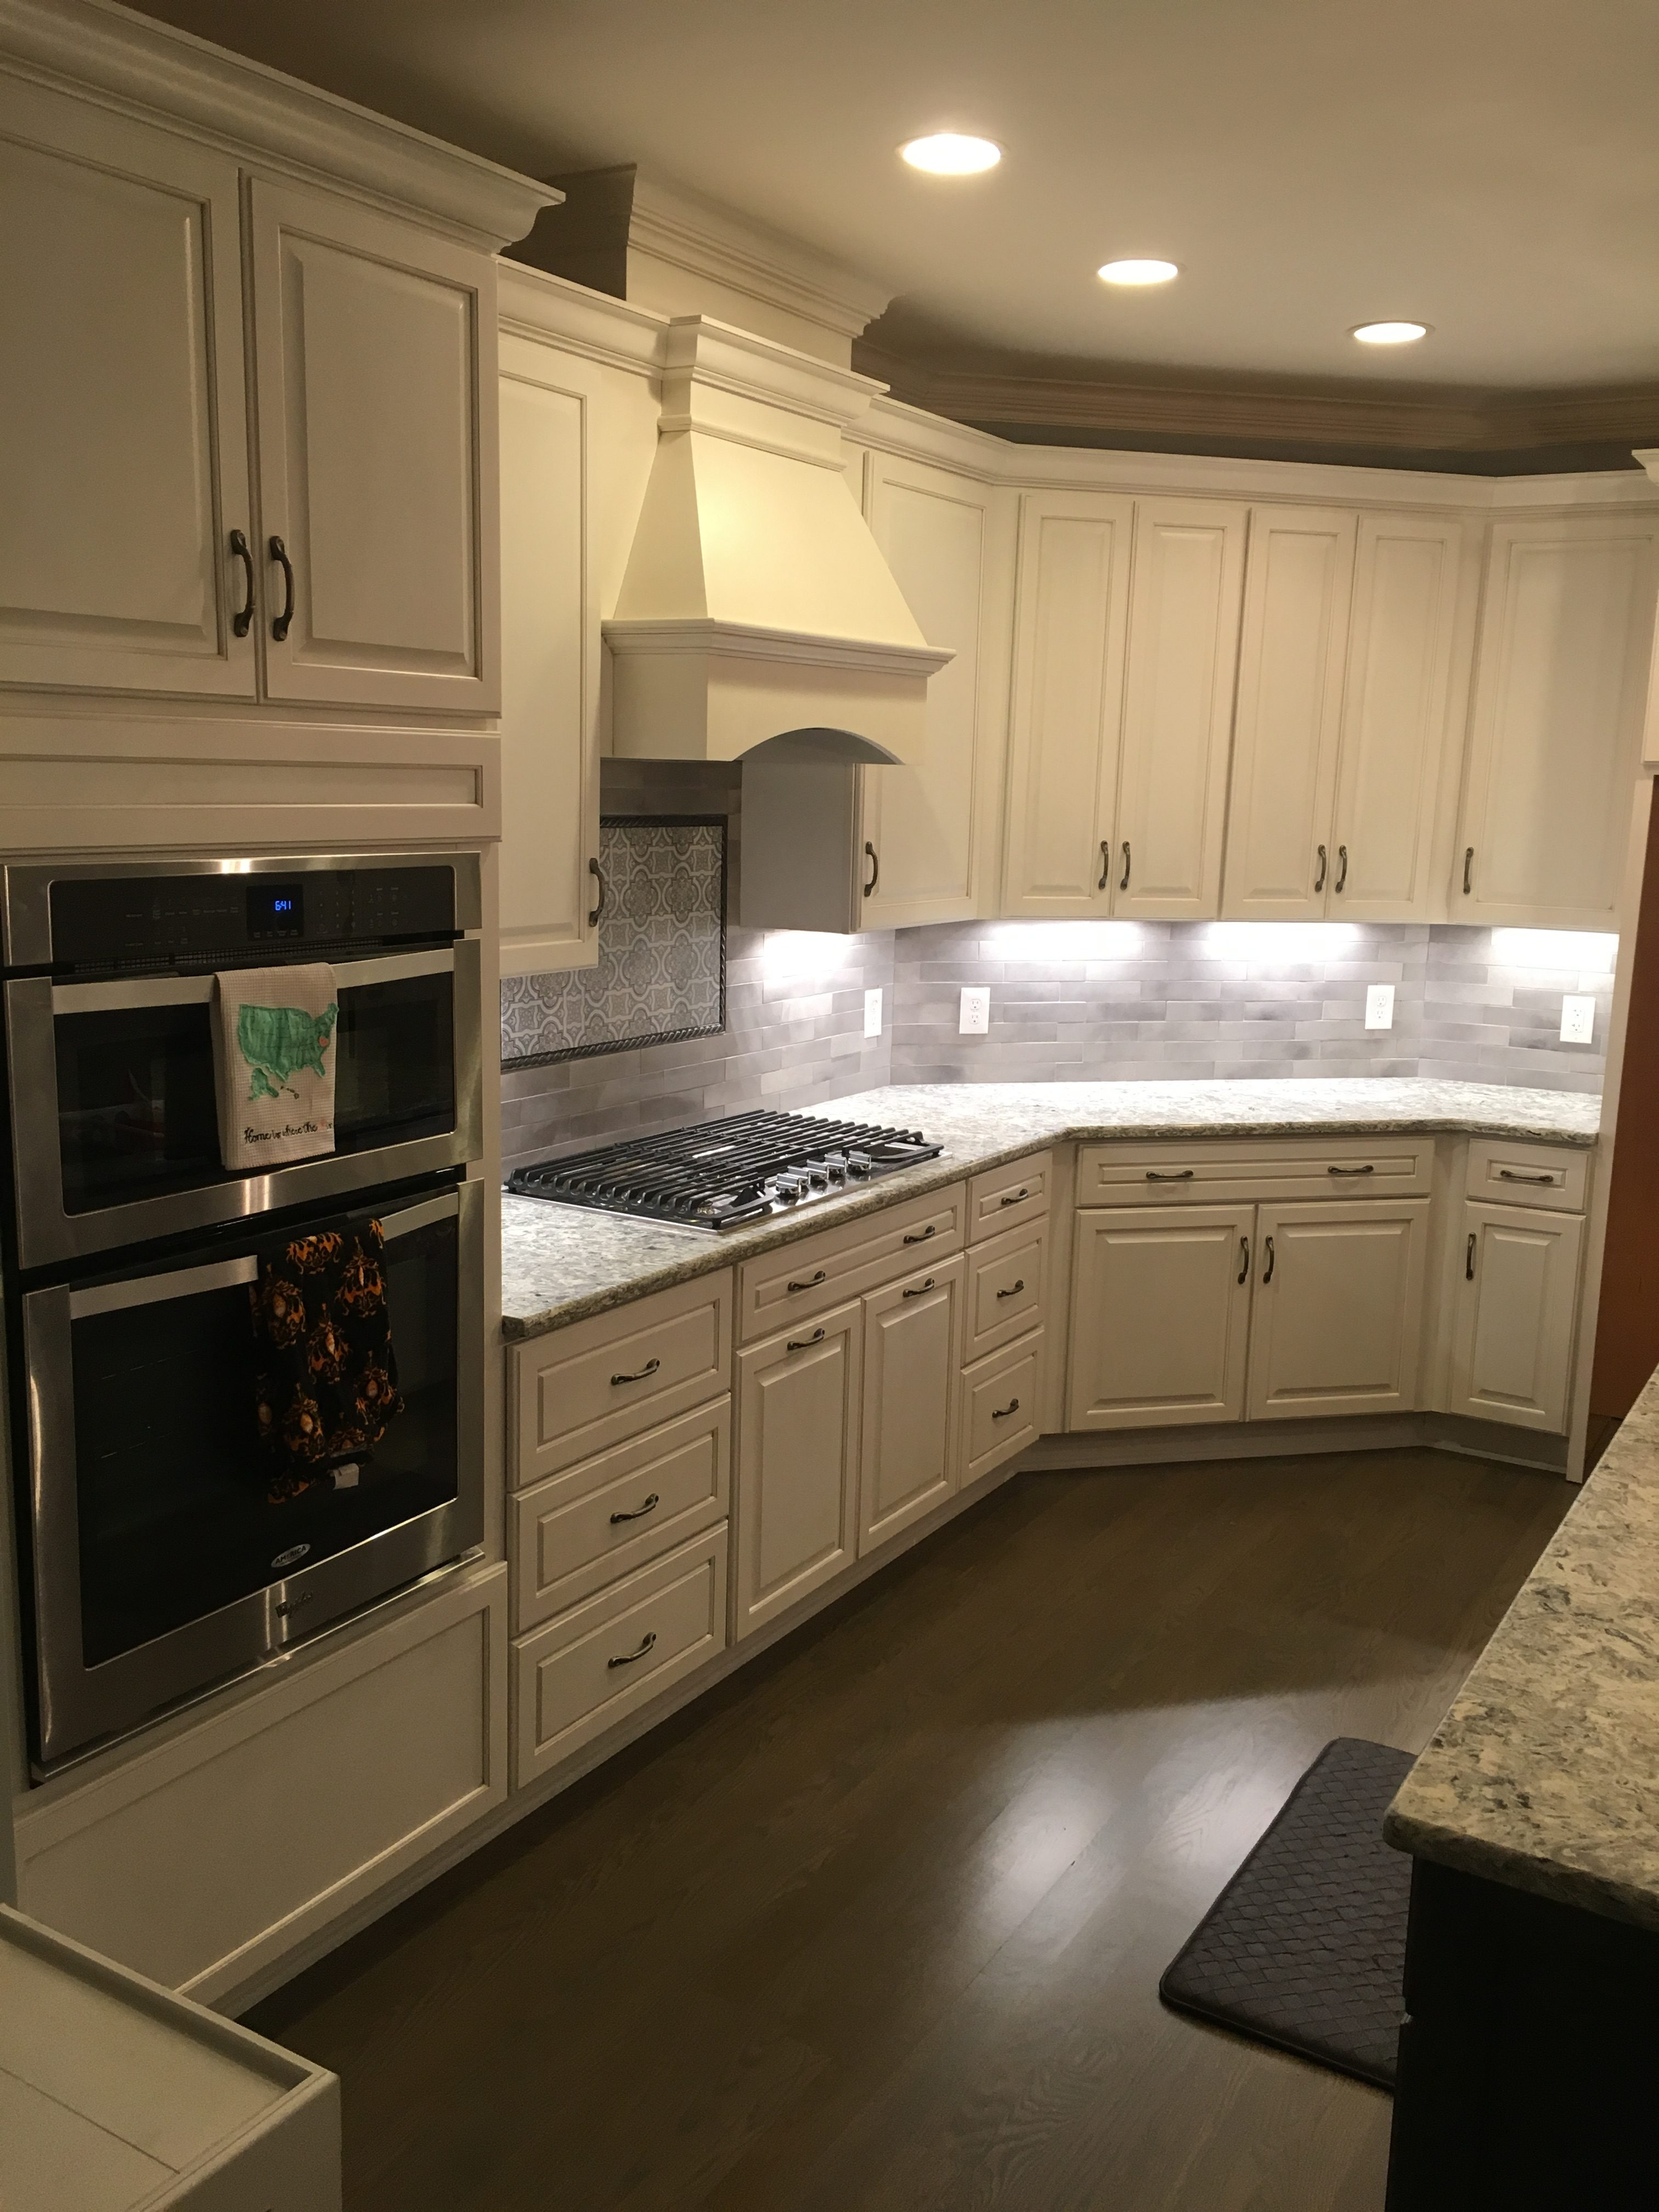 Durasupreme Cabinets and Double Oven